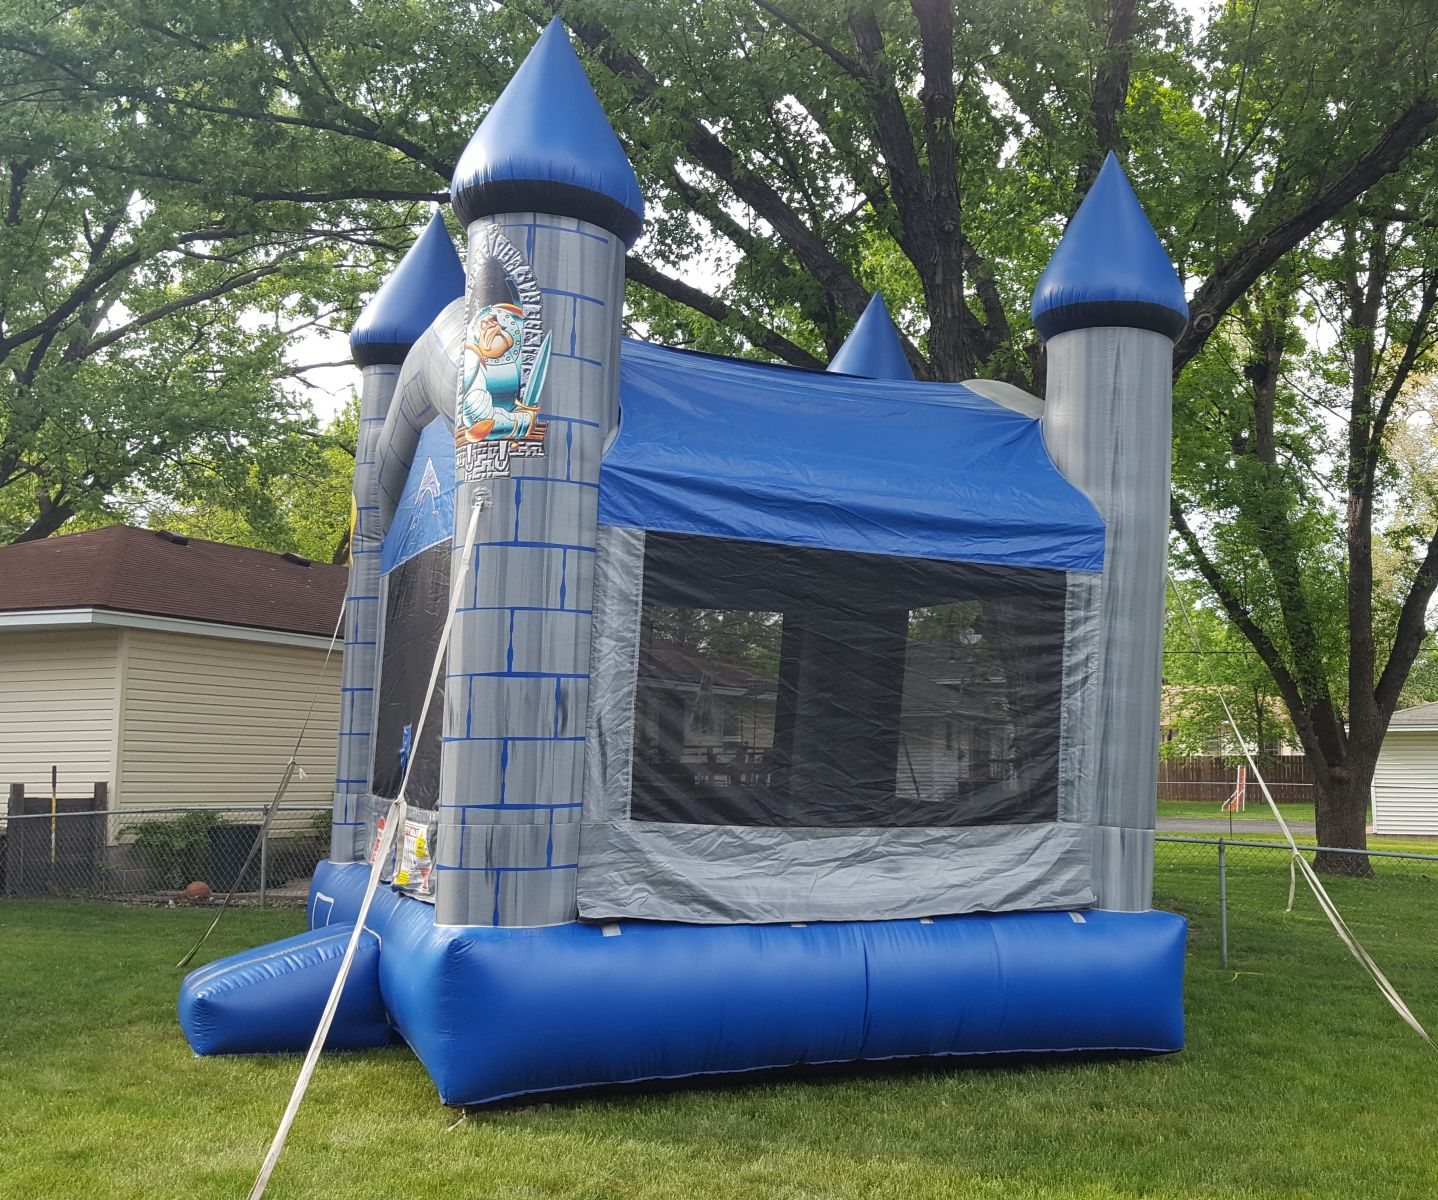 Laughs-A-Lot Bounce House side view